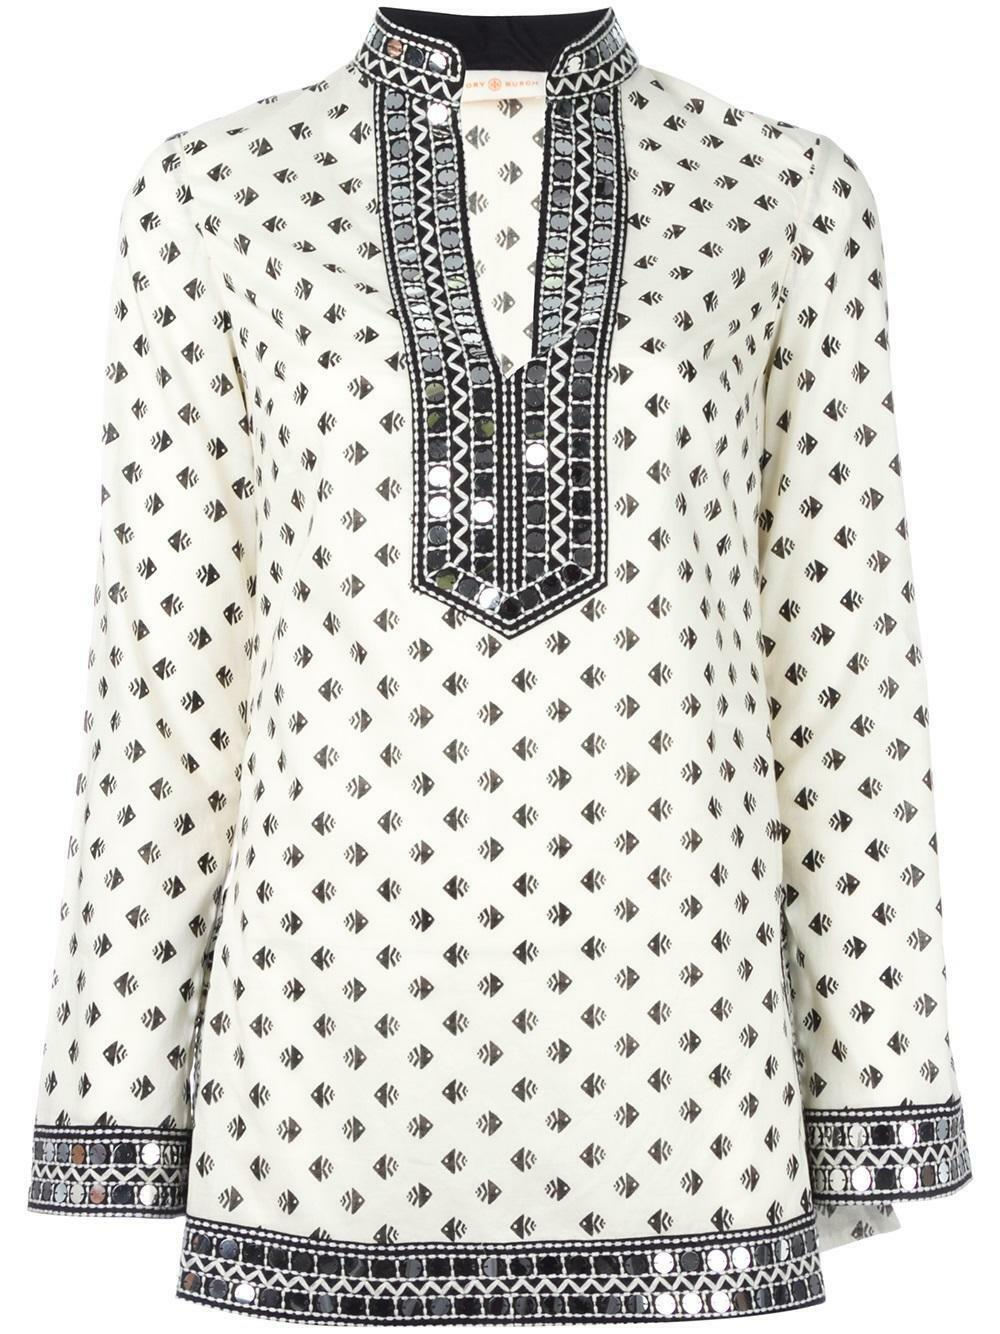 Tory Burch Sequin Embellished Tunic (6)